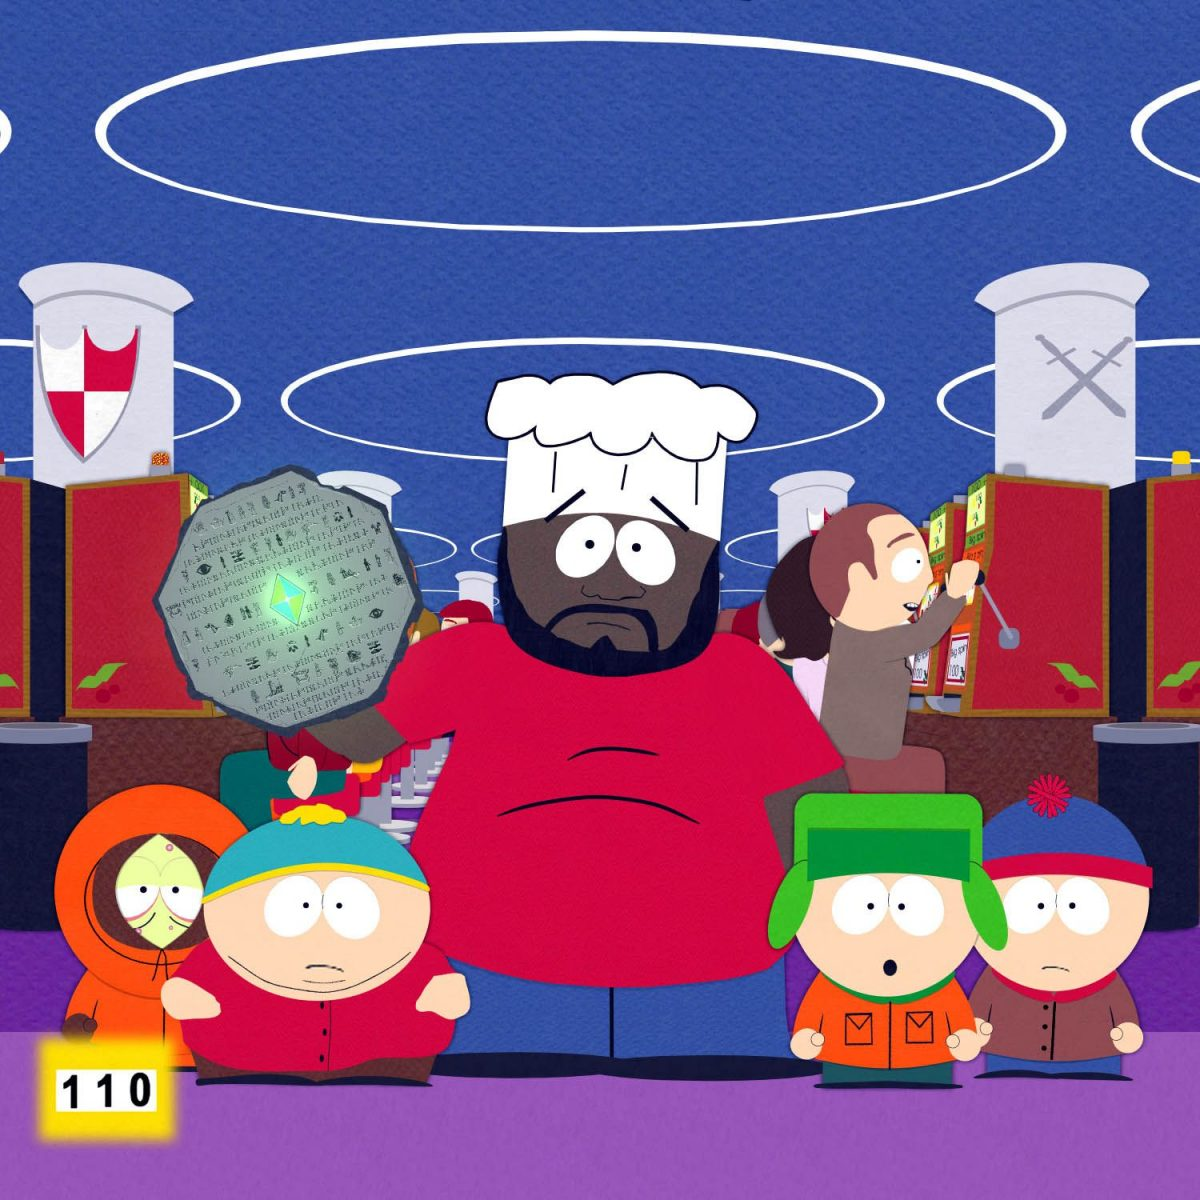 South Park counts the number of times it says the S word